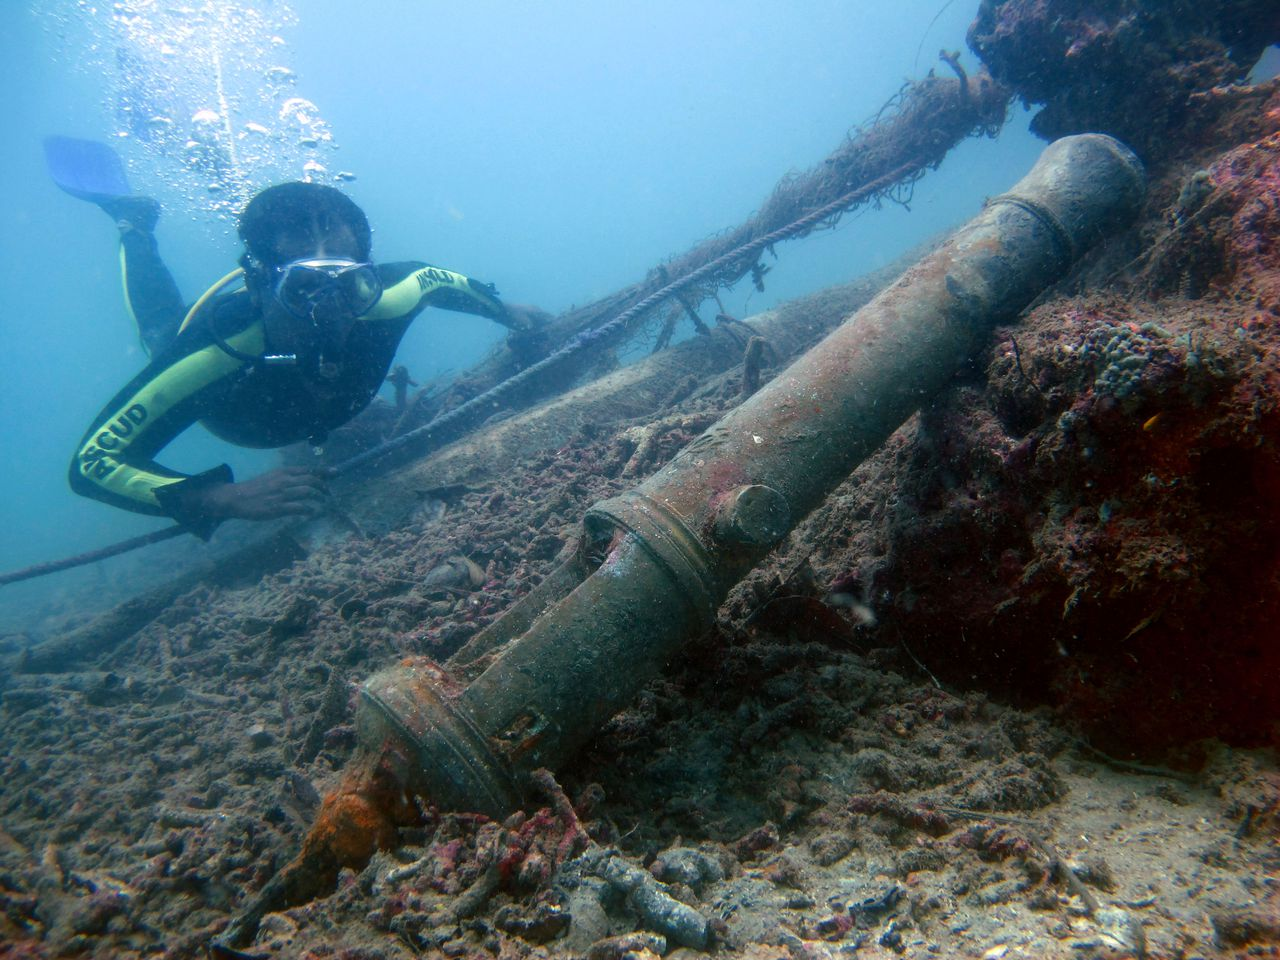 In this Monday, Feb. 13, 2012 photo, a diver swims near a Dutch East India Company (VOC) cannon from a shipwreck that is believed to be from the 17th century, in Mentawai Islands, Indonesia. Indonesia, a sprawling archipelago nation straddling the equator, remains desperately poor despite its vast oil, coal and gold reserves. Its graveyard of ships from Asia, Europe and the Middle East, one of the biggest in the world with nearly 500 wrecks identified so far, has long been viewed as yet another resource to exploit. (AP Photo/Dita Alangkara)